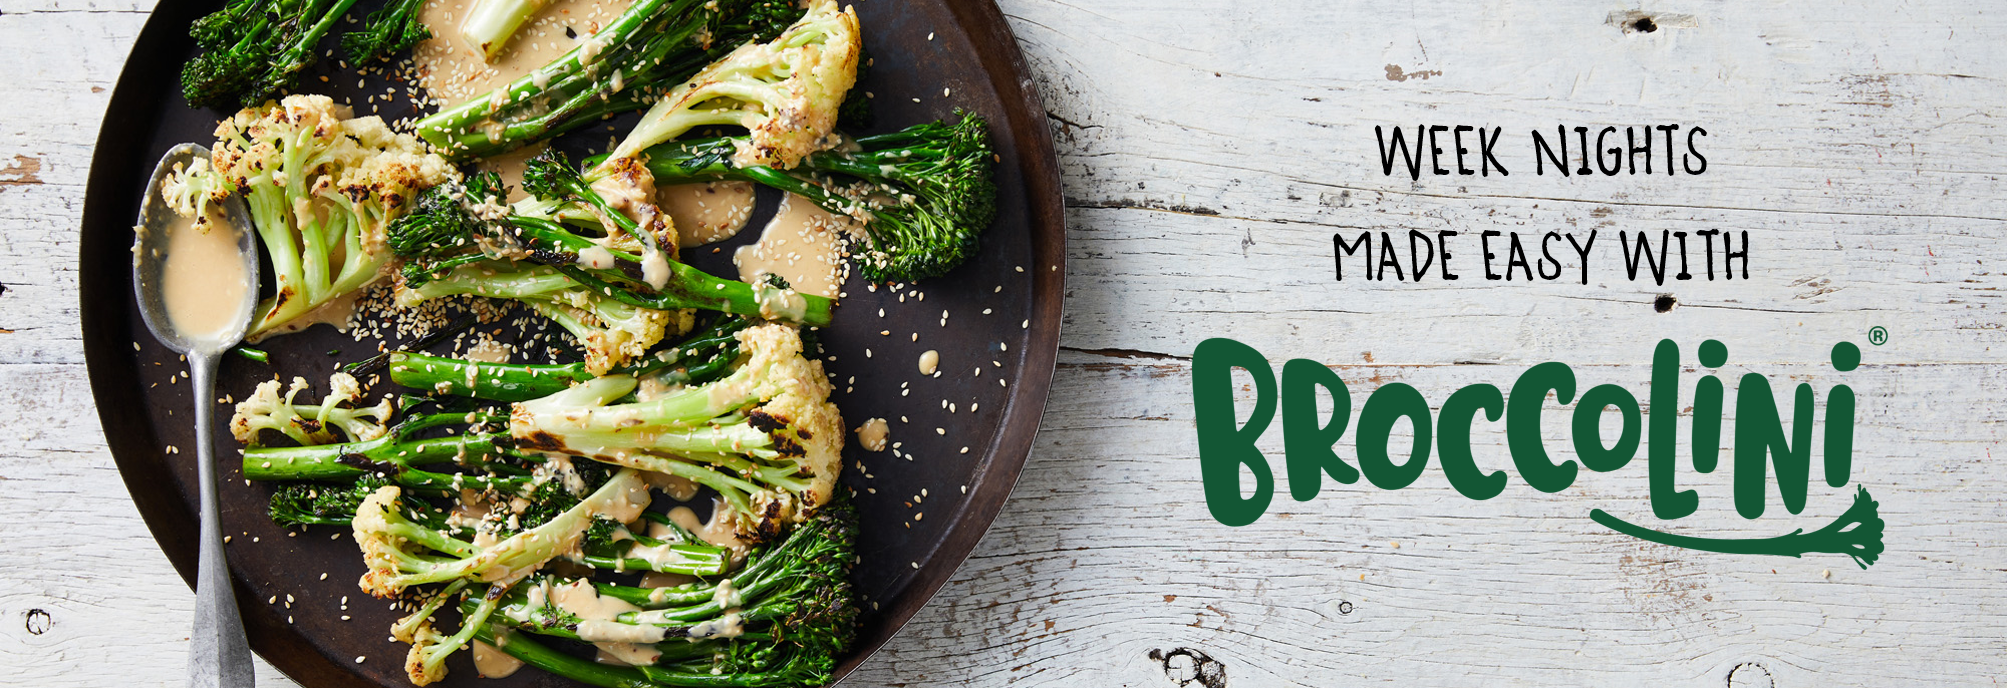 Weeknight dinners made easy with broccolini